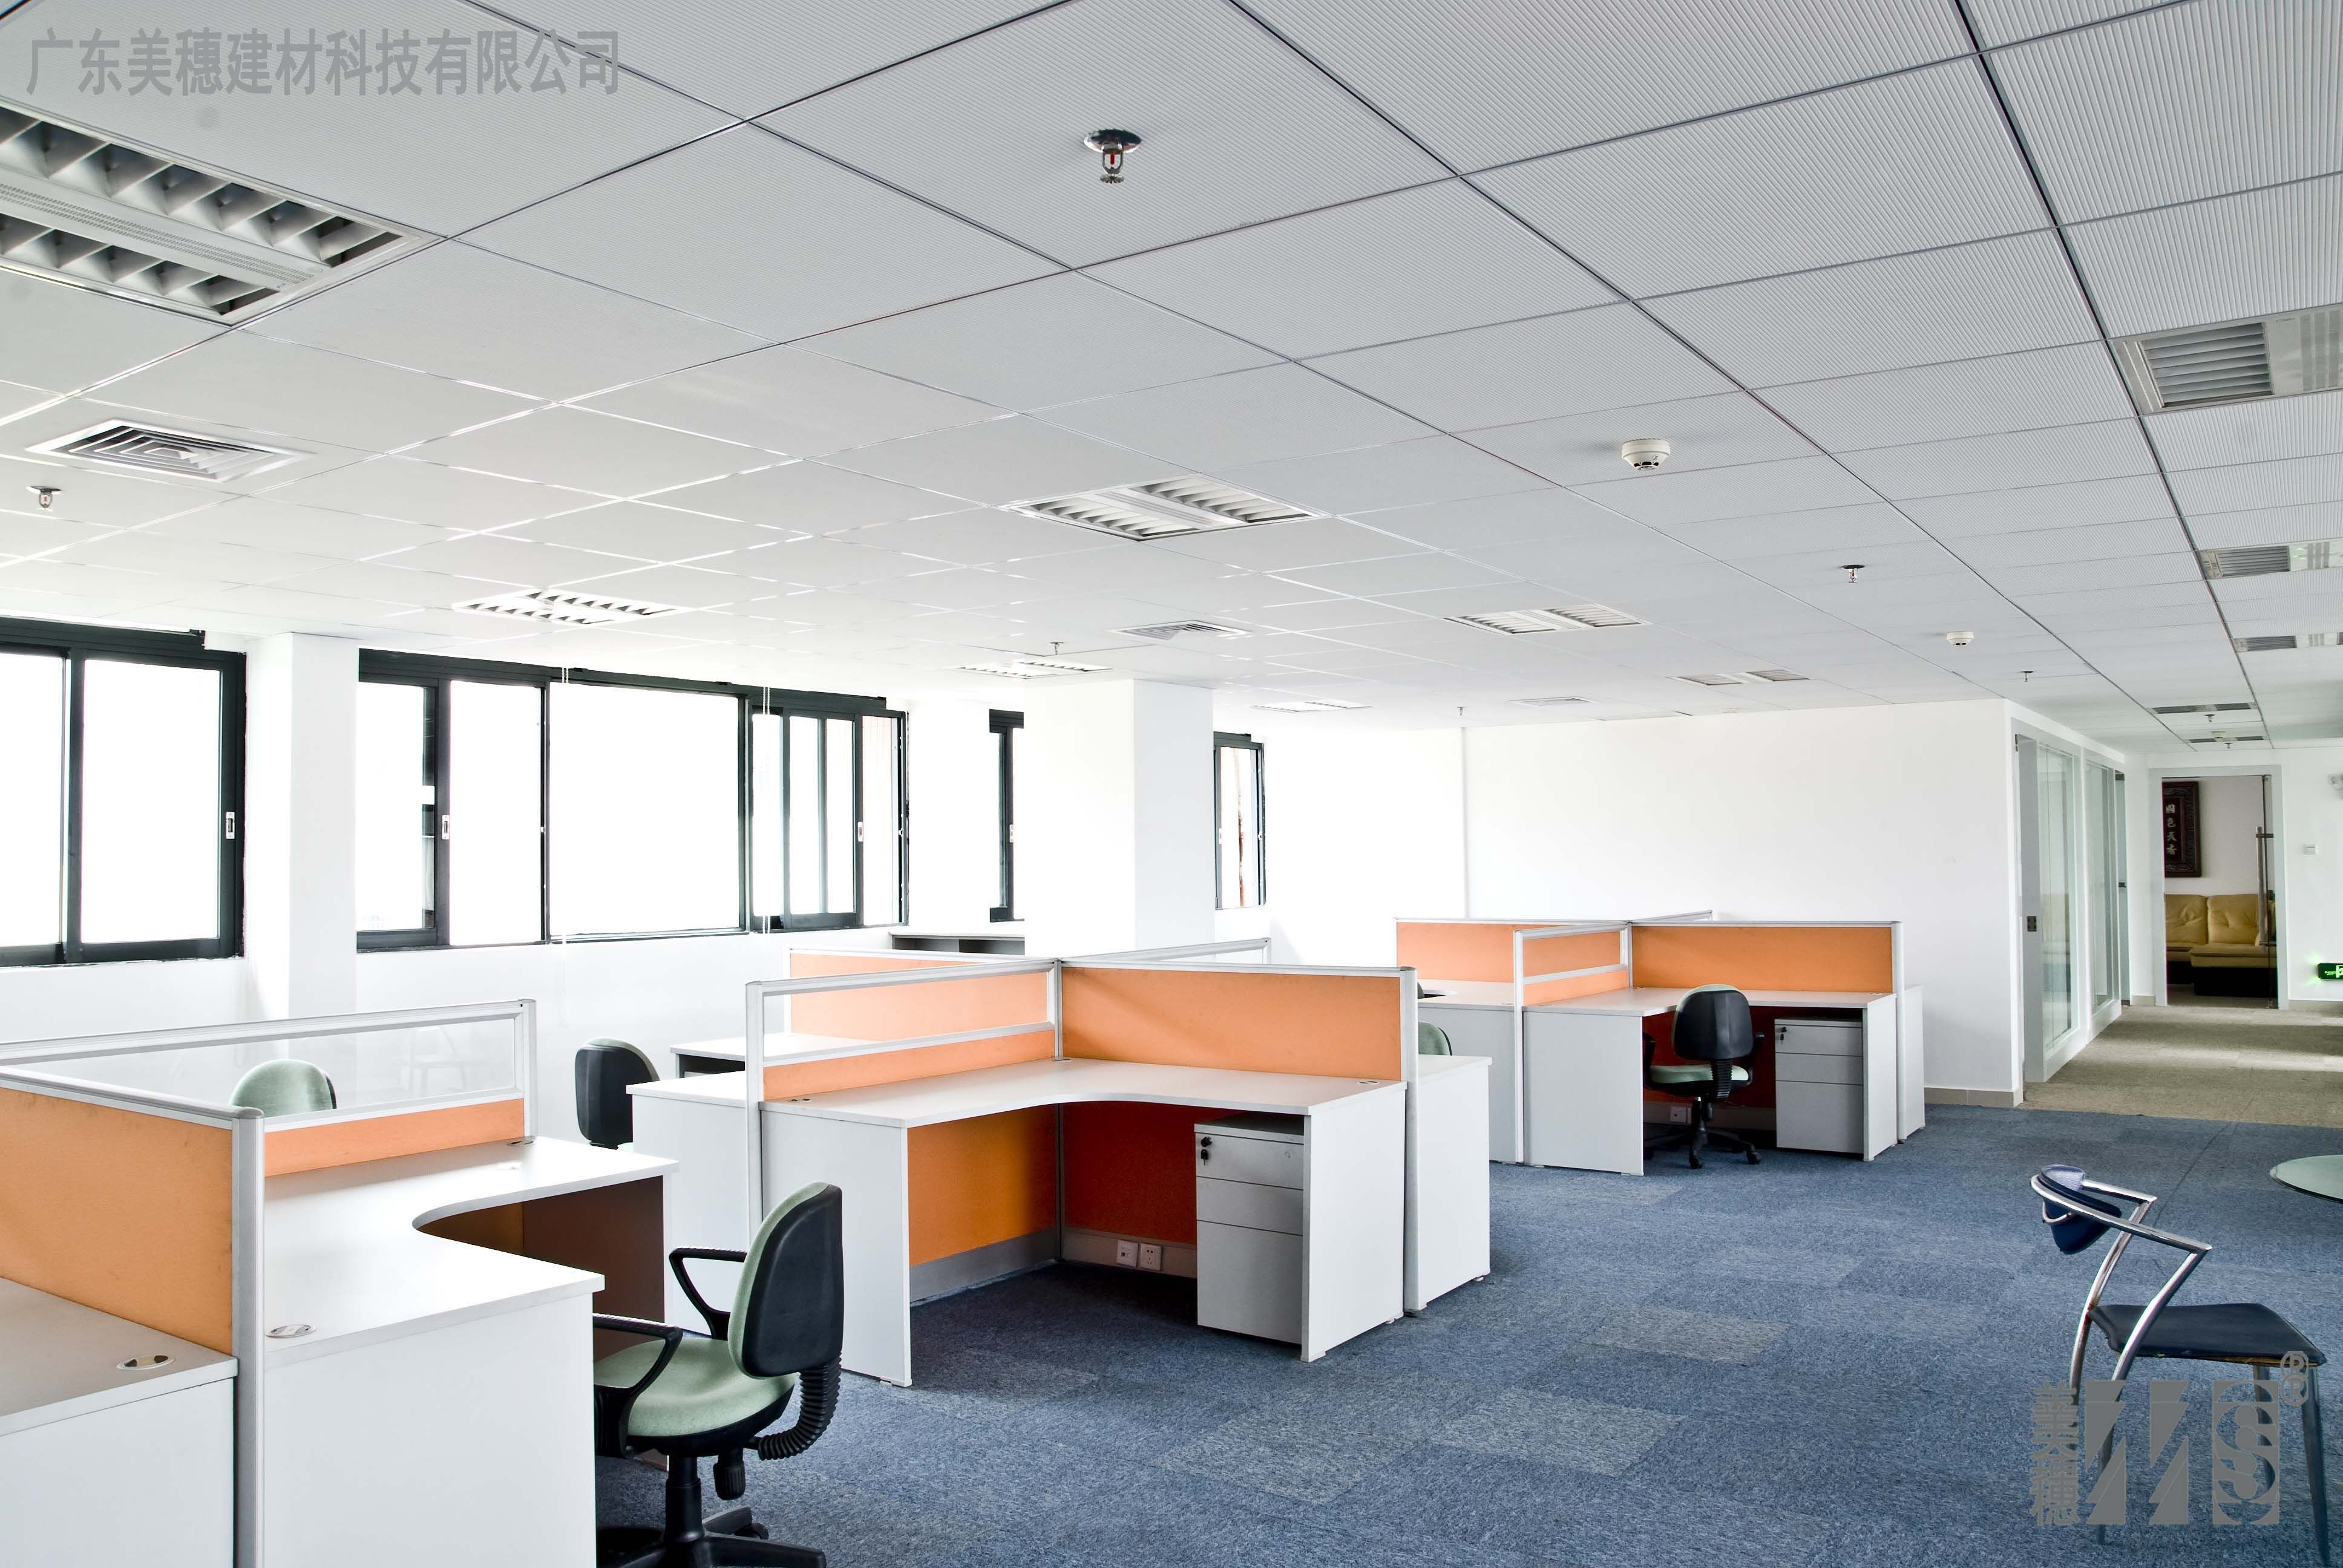 ceiling tiles news jpg ceilings aluminum grid gridaluminum t fluorine industry carbon article office officet